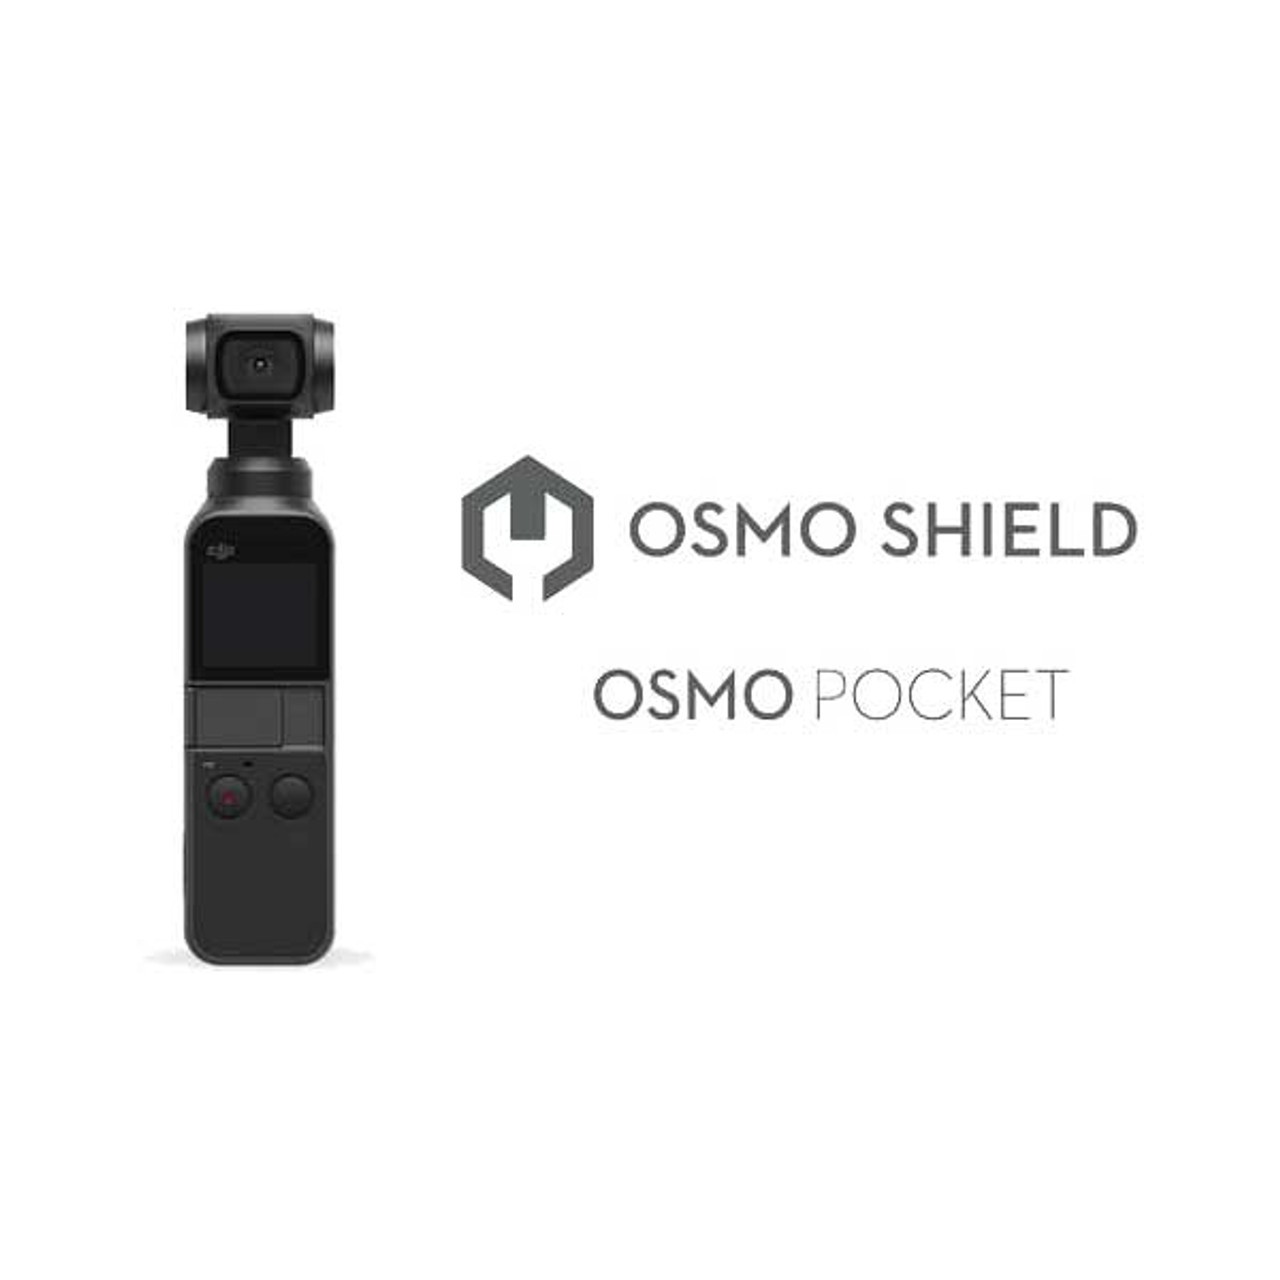 DJI OSMO Shield Code - Osmo Pocket